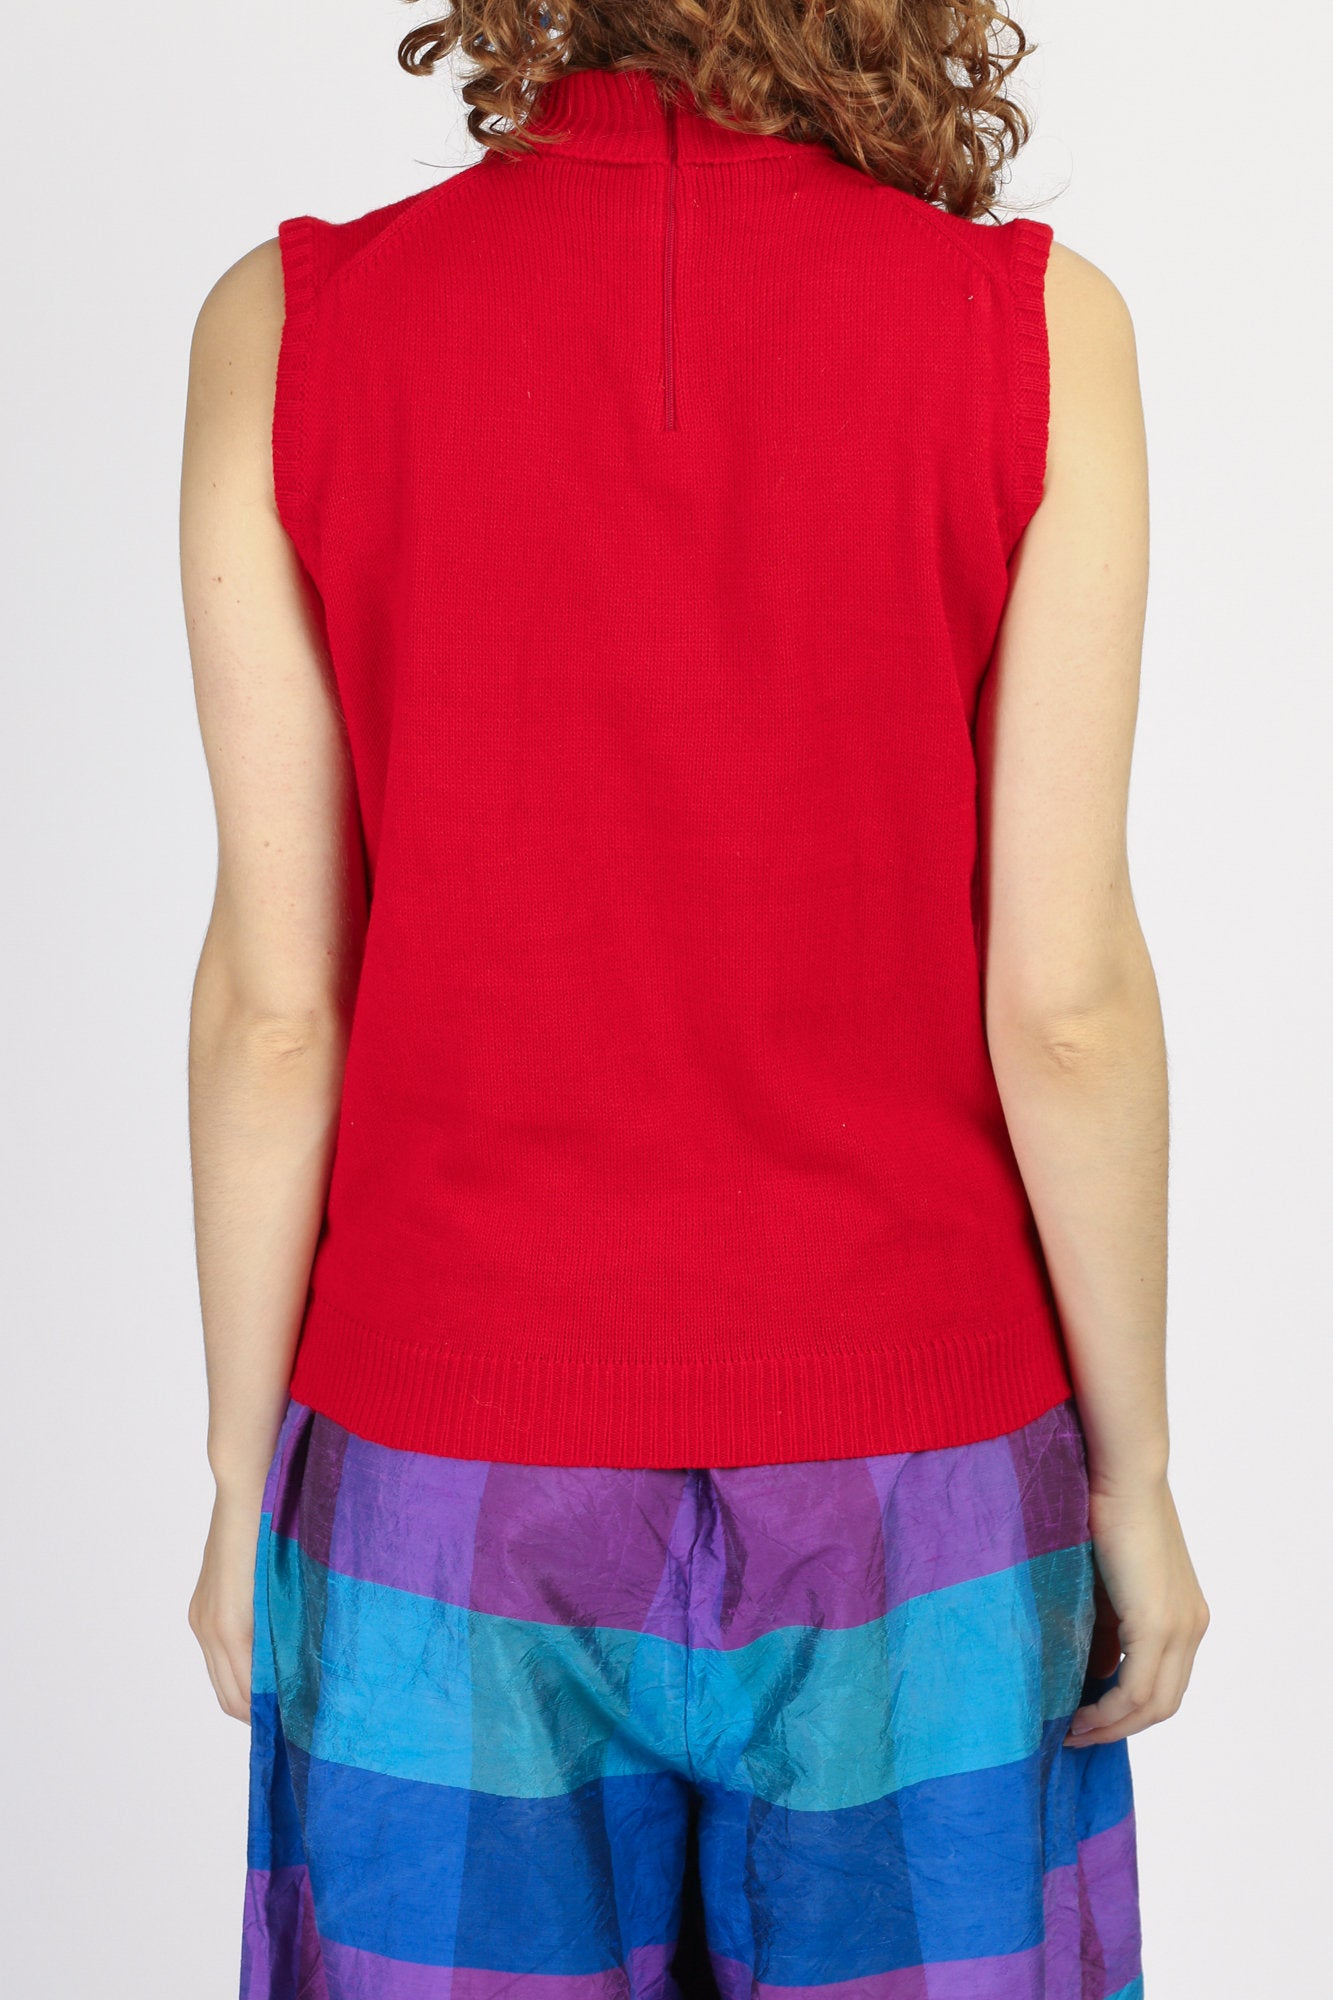 60s 70s Red Sleeveless Sweater Top - Medium